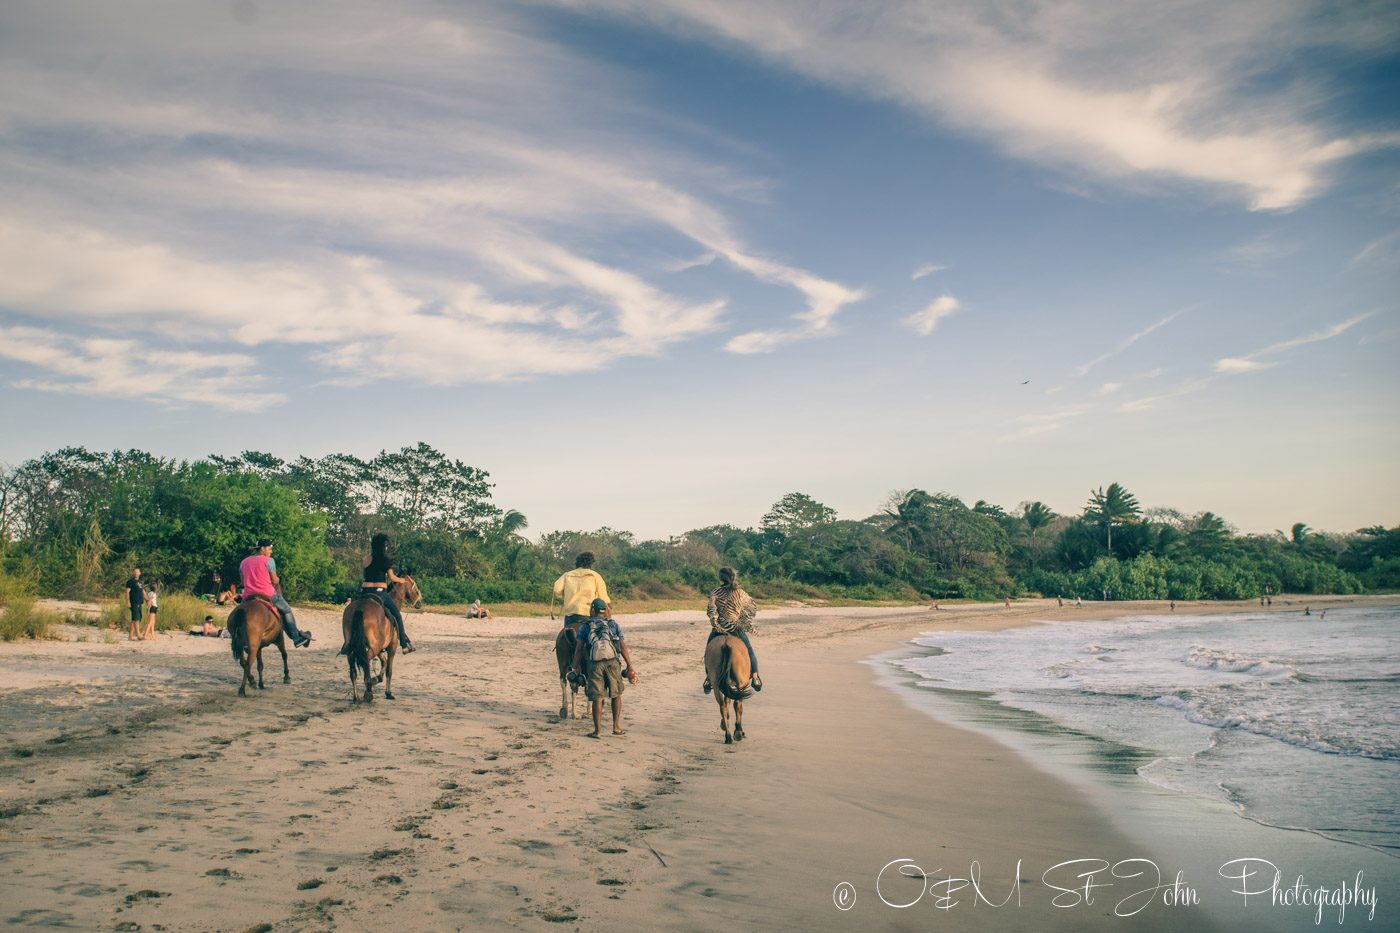 Costa rica itinerary: horseback riding nosara